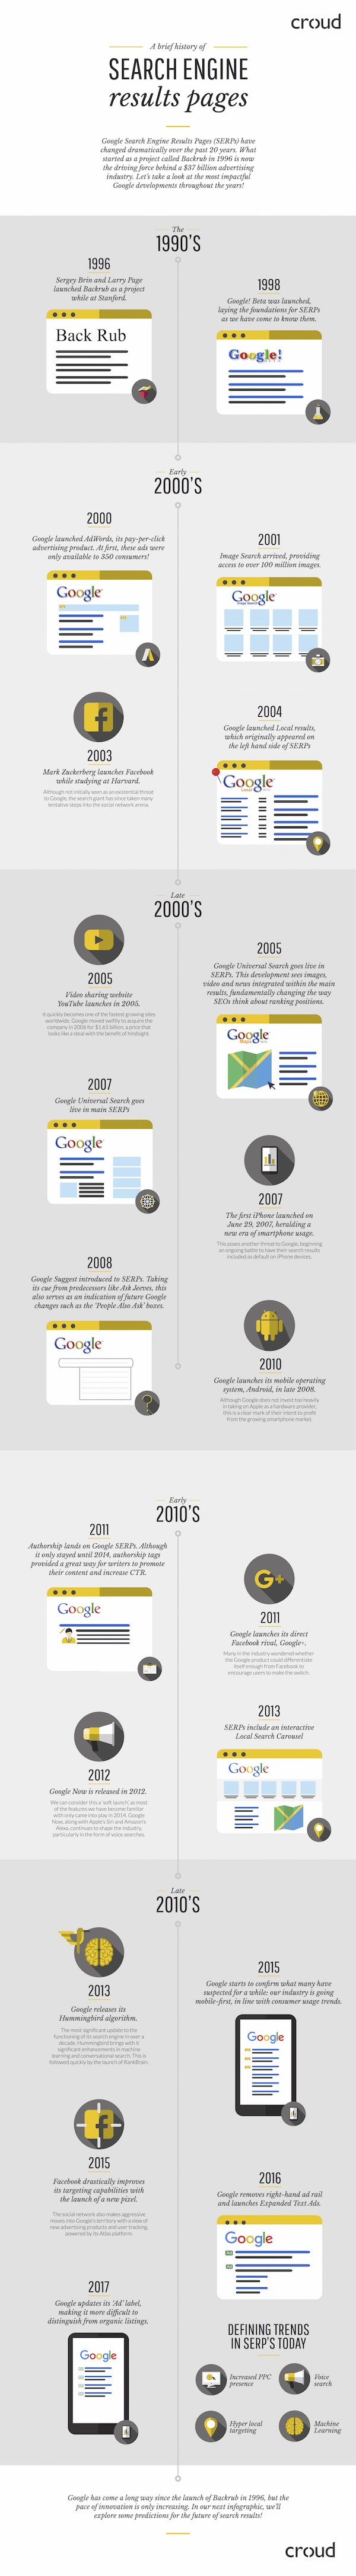 Evolution Of Google Search Engine Result Pages Over The Years - #infographic